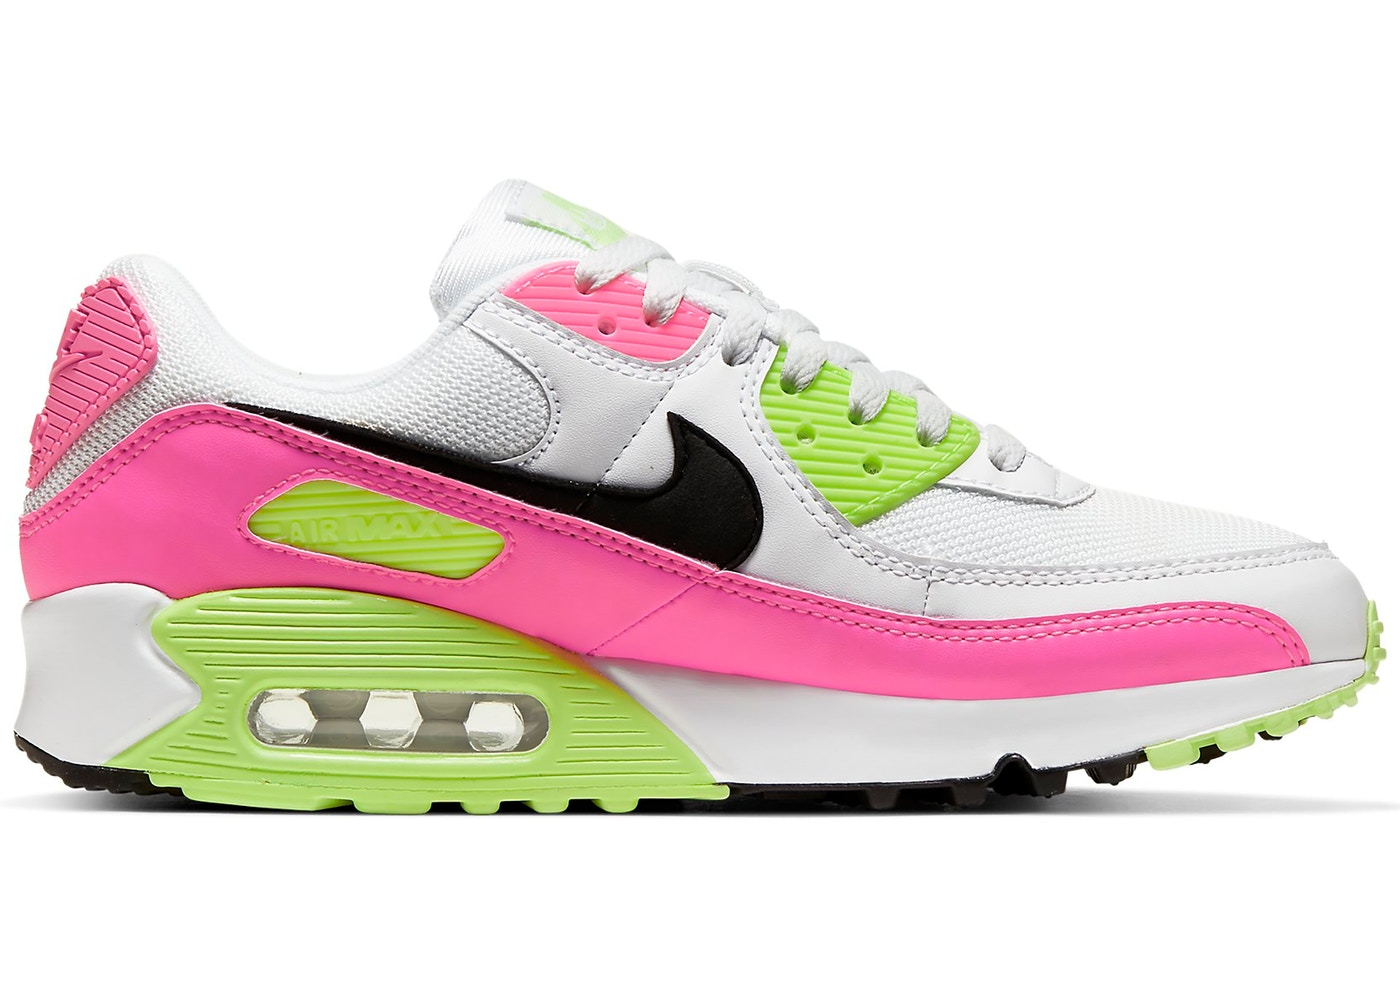 Perception repetition Punctuality  Nike Air Max 90 Watermelon (W) - CT1030-100